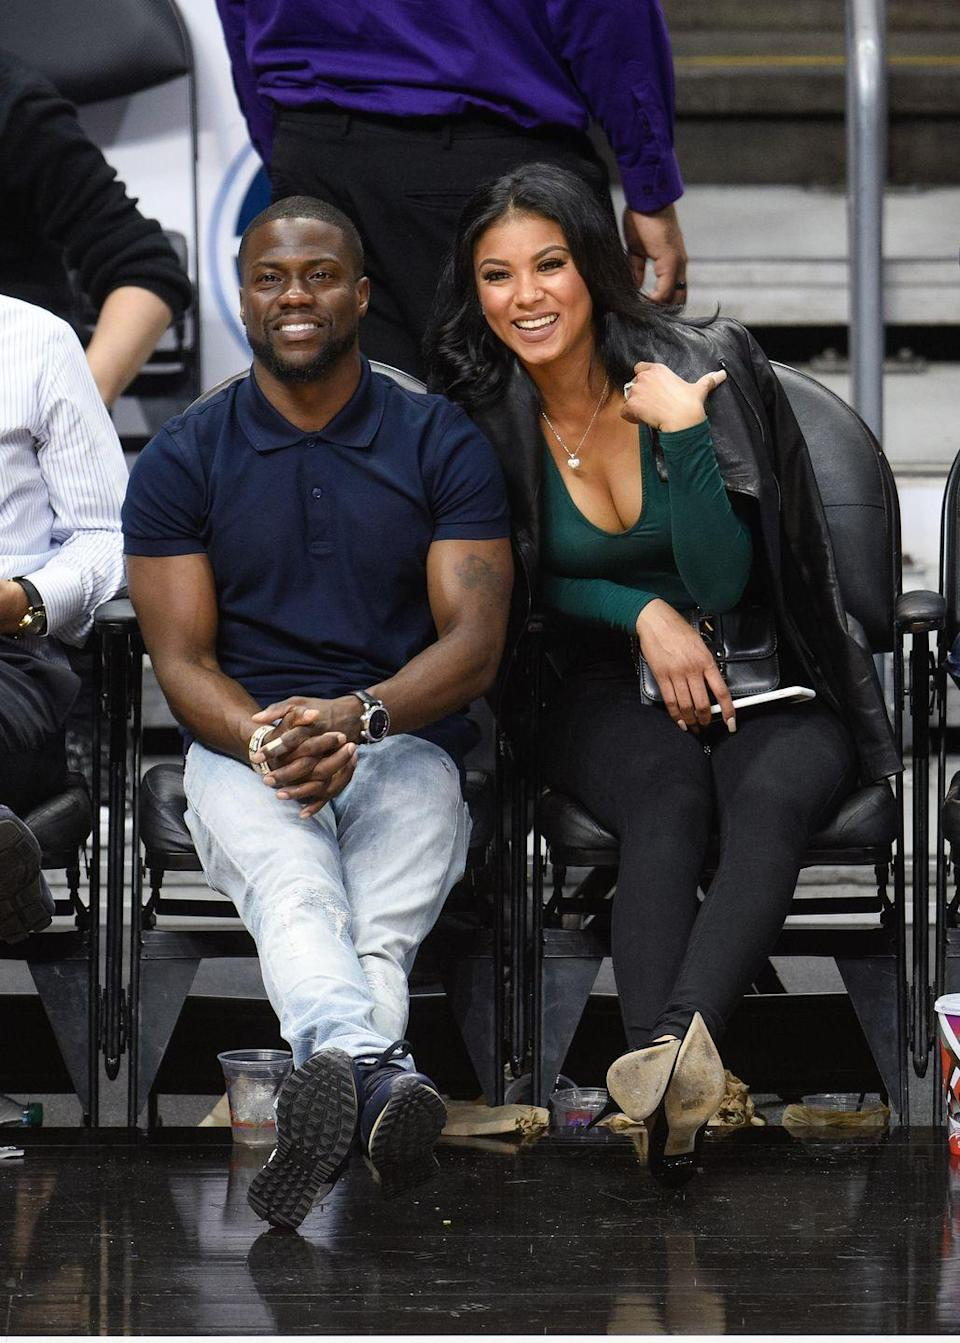 """<p>Because the couple's legs are crossed with ease—no tension in their knees—Donaldson can see how comfortable Kevin and Eniko are with each other. Also, she's getting hints that Eniko trusts Kevin and knows she can rely on him. """"Eniko is leaning on Kevin to be closer to him,"""" Donaldson says. """"This may indicate that she often relies on him for support and strength.""""<br></p>"""